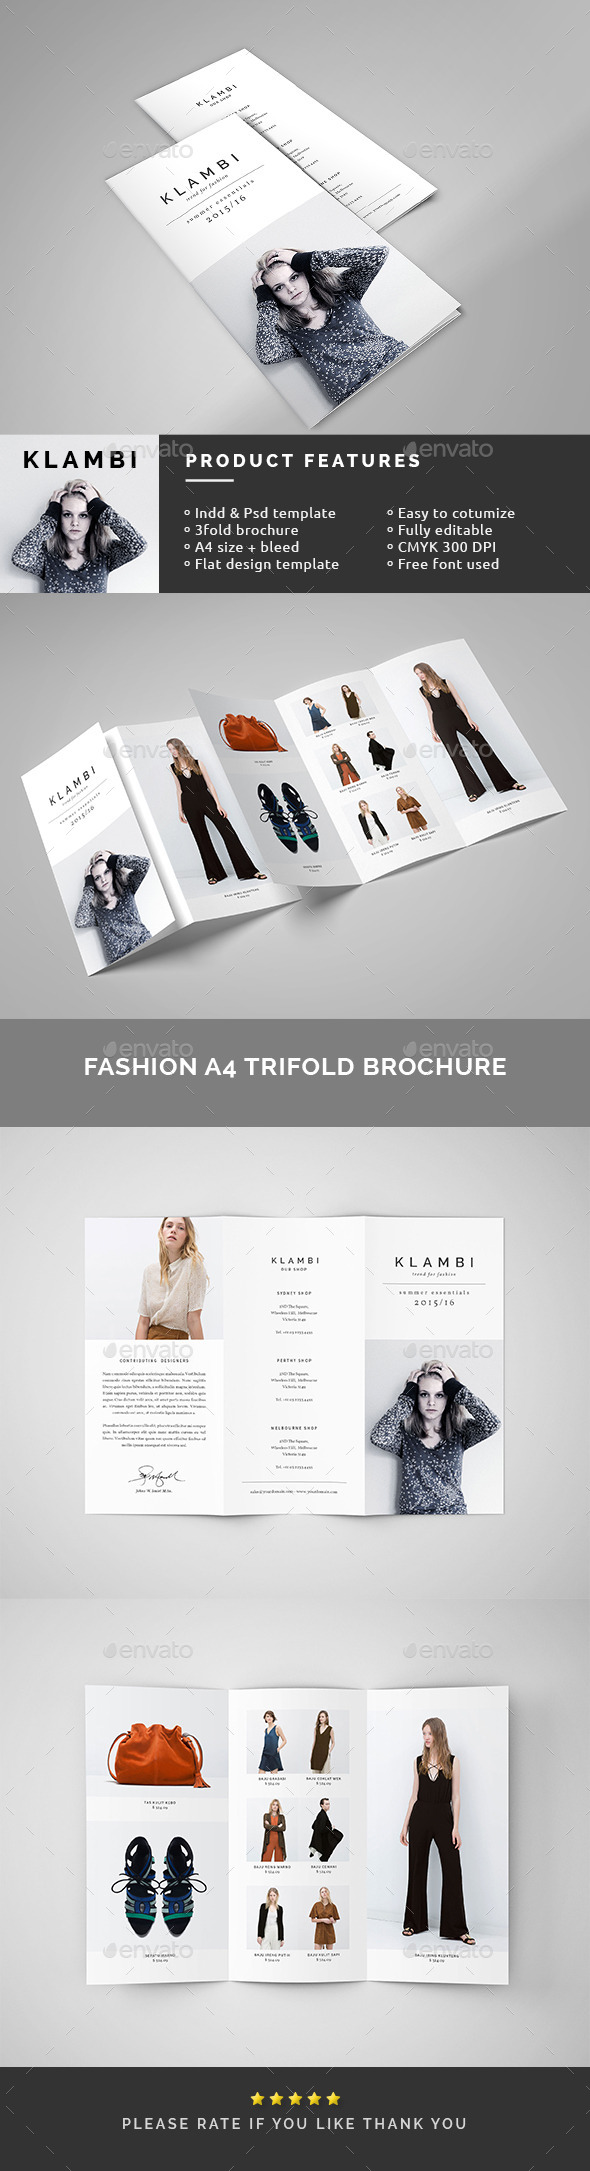 Fashion A4 Trifold Brochure - Catalogs Brochures